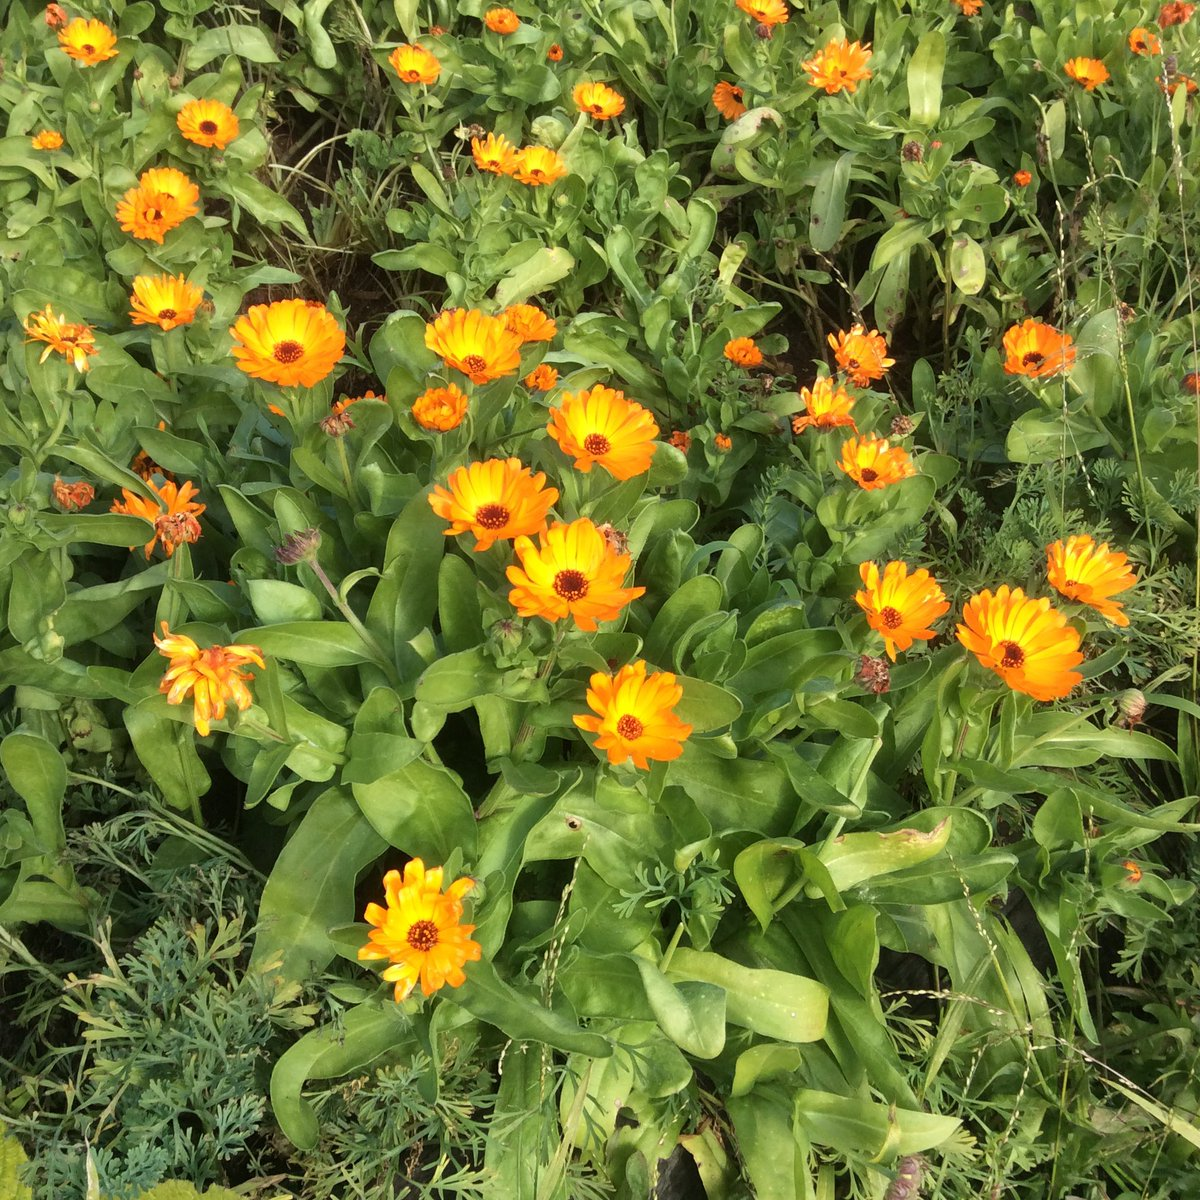 @alyssaharad #FlowerReport Mendocino sits on the ocean's moderating effects, so we have calendula to offer. https://t.co/VNhQo0gtY6